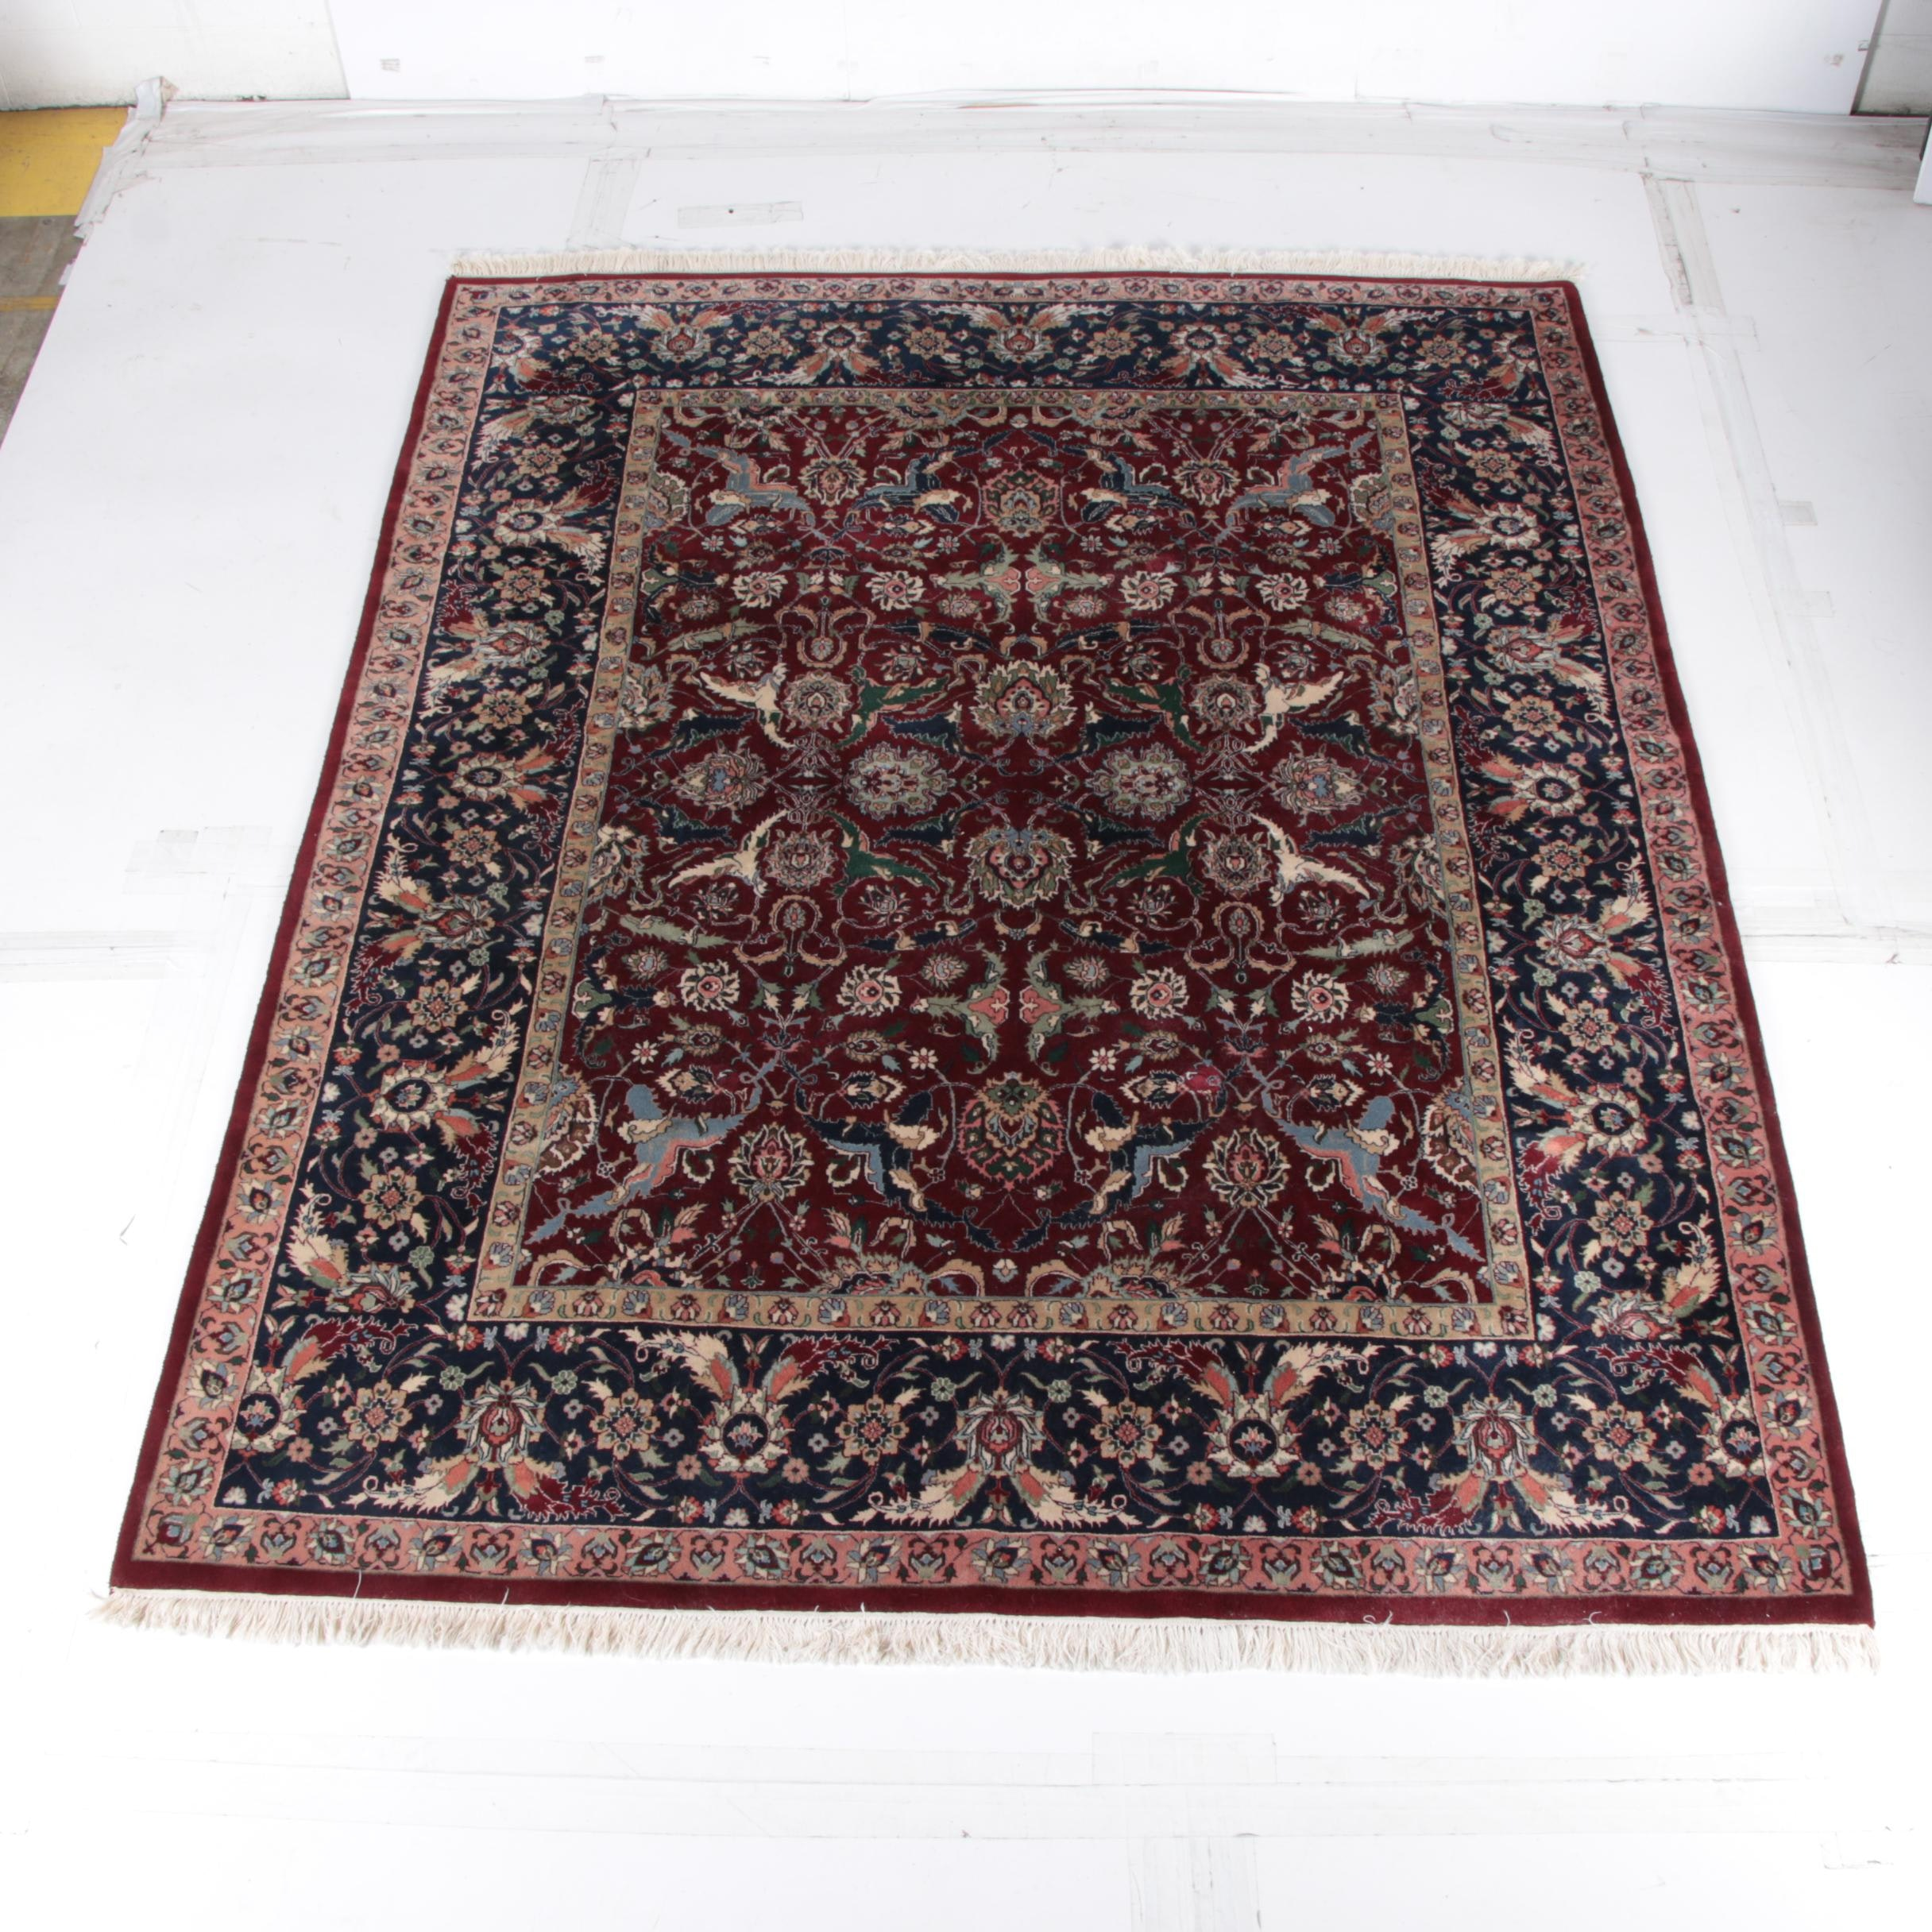 Hand-Knotted Indo-Persian Peshawar Style Wool Area Rug